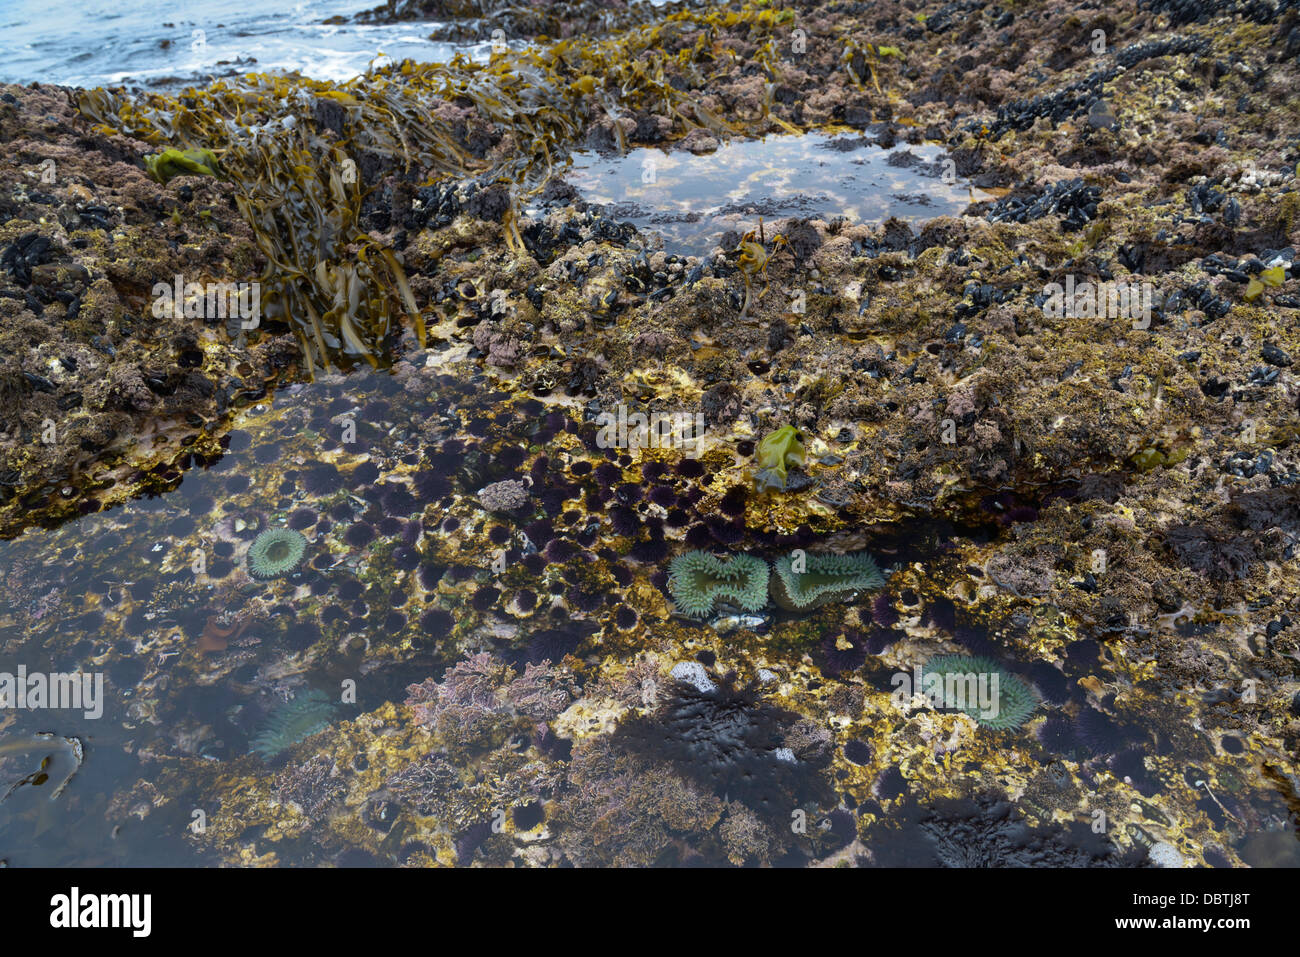 Tidepools with kelp and anemones, Point Lobos State Natural Reserve, CA - Stock Image